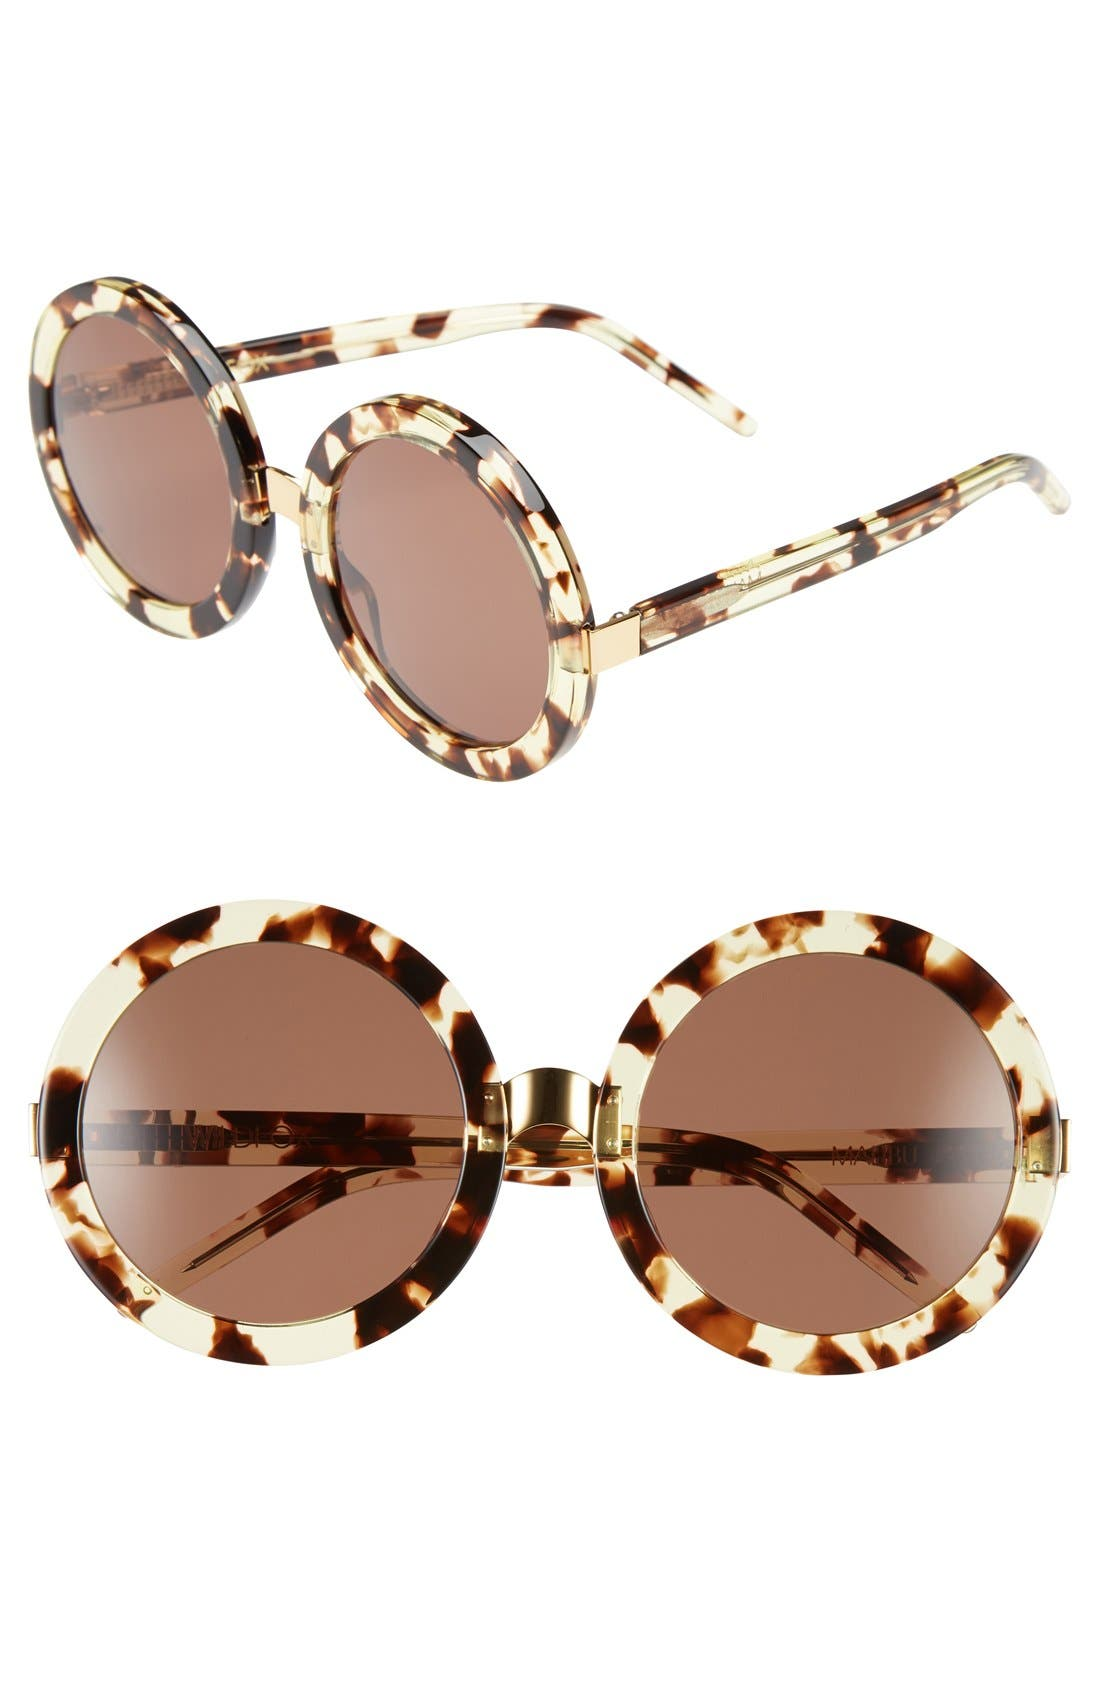 Alternate Image 1 Selected - Wildfox 'Malibu' 56mm Round Sunglasses